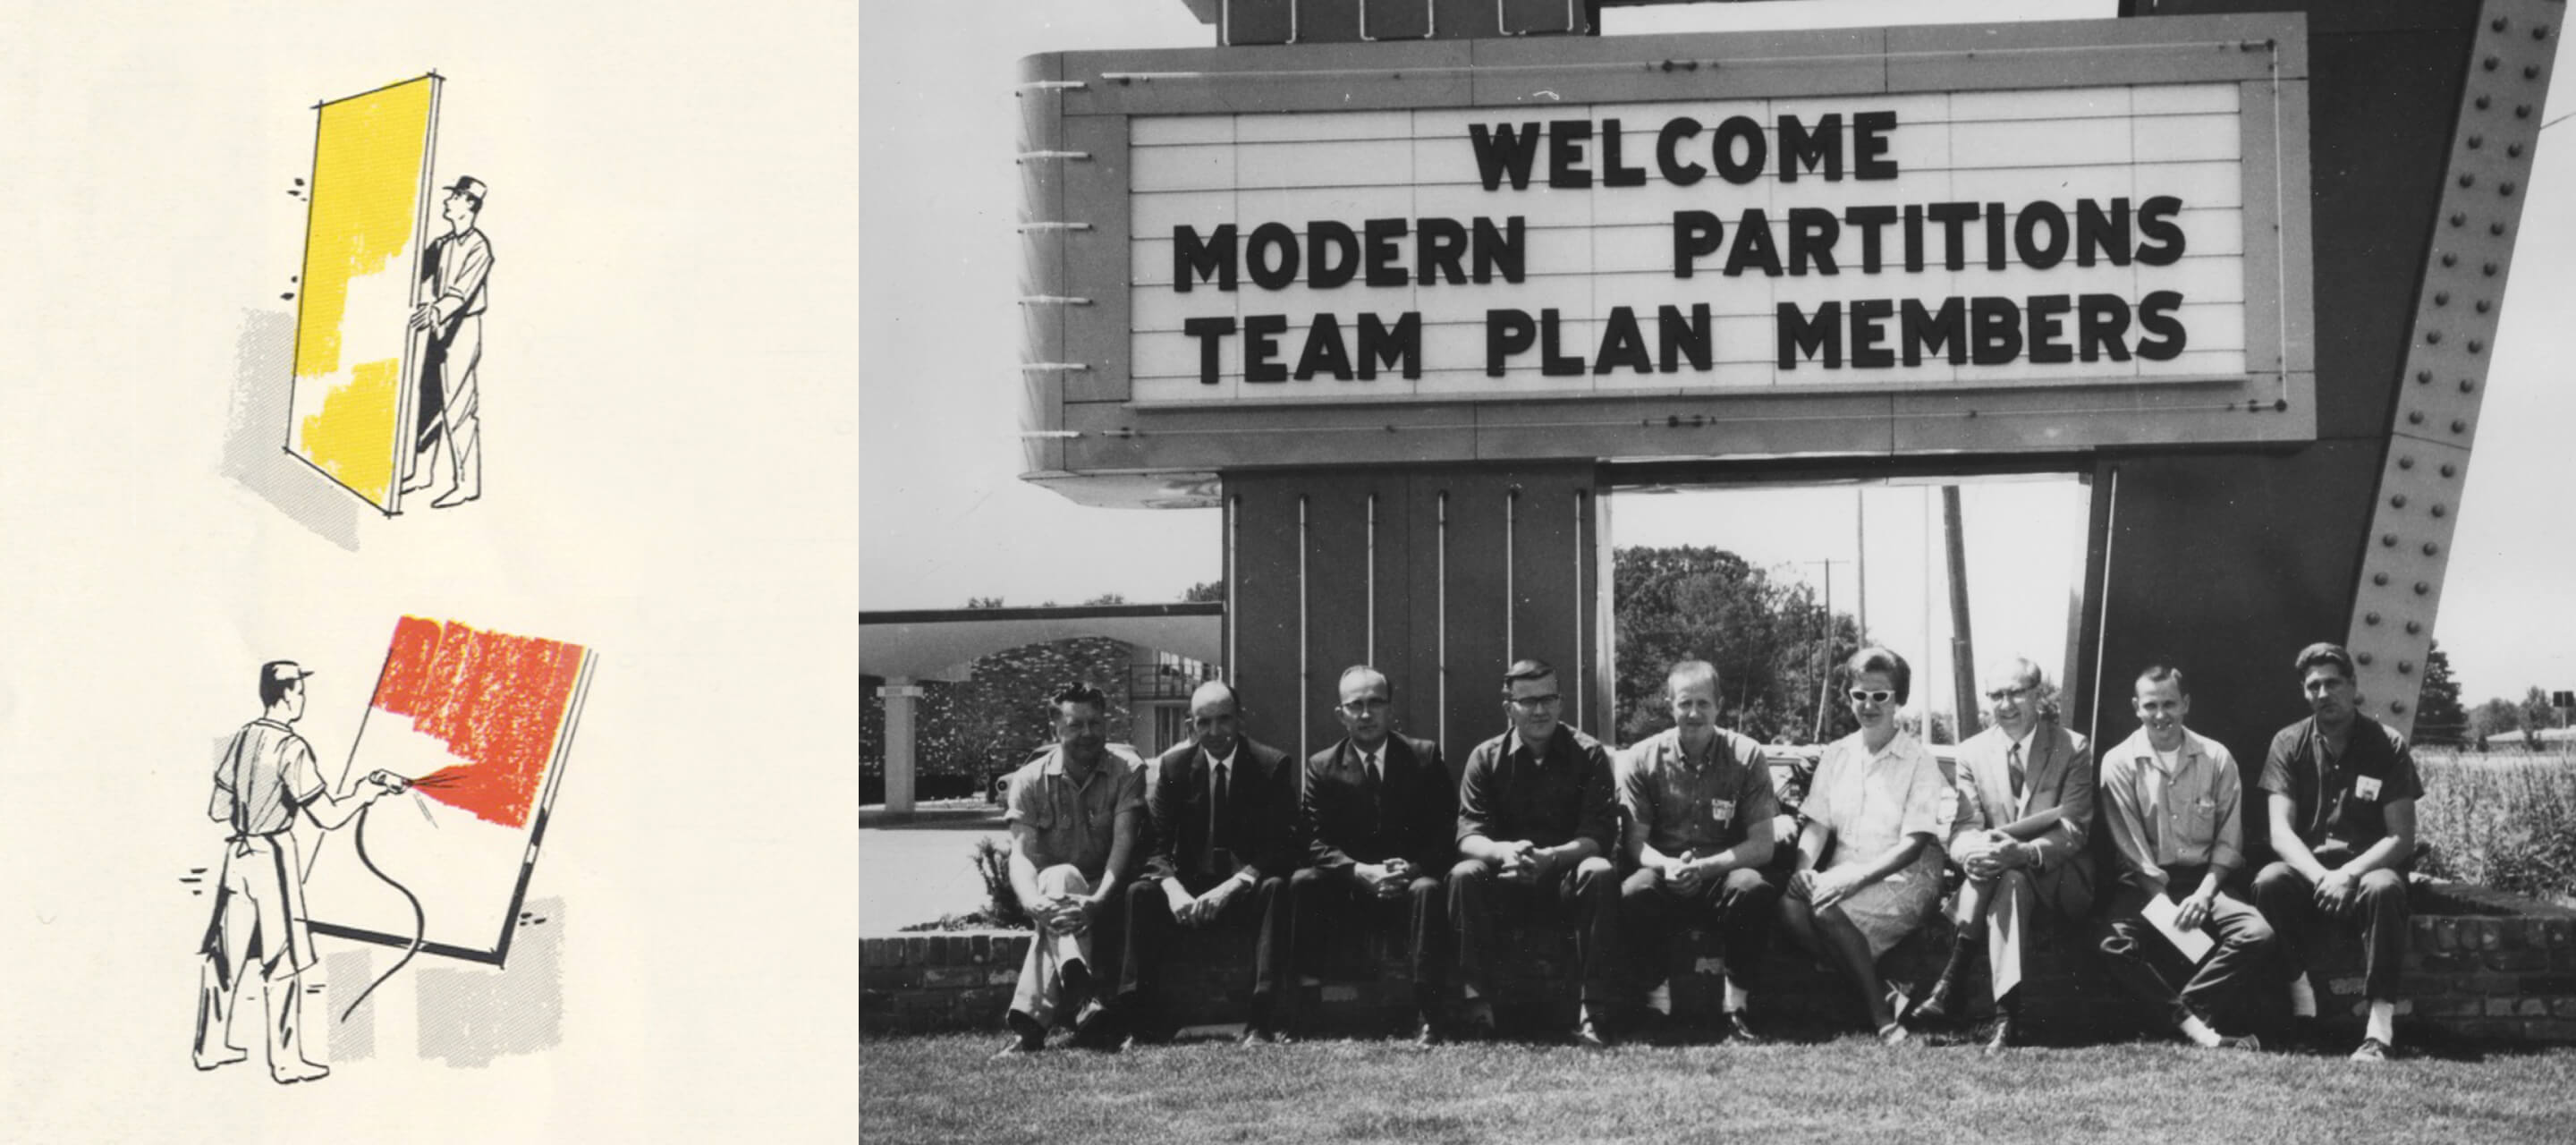 1950s​—In 1951, when a freelance salesman pitches a sketch of proposed bank-type partitions for the United Auto Workers headquarters in Detroit, G.W.'s first foray into floor-to-ceiling movable walls is realized. ​By the end of the decade, Modern Partitions, Inc., is formed.​